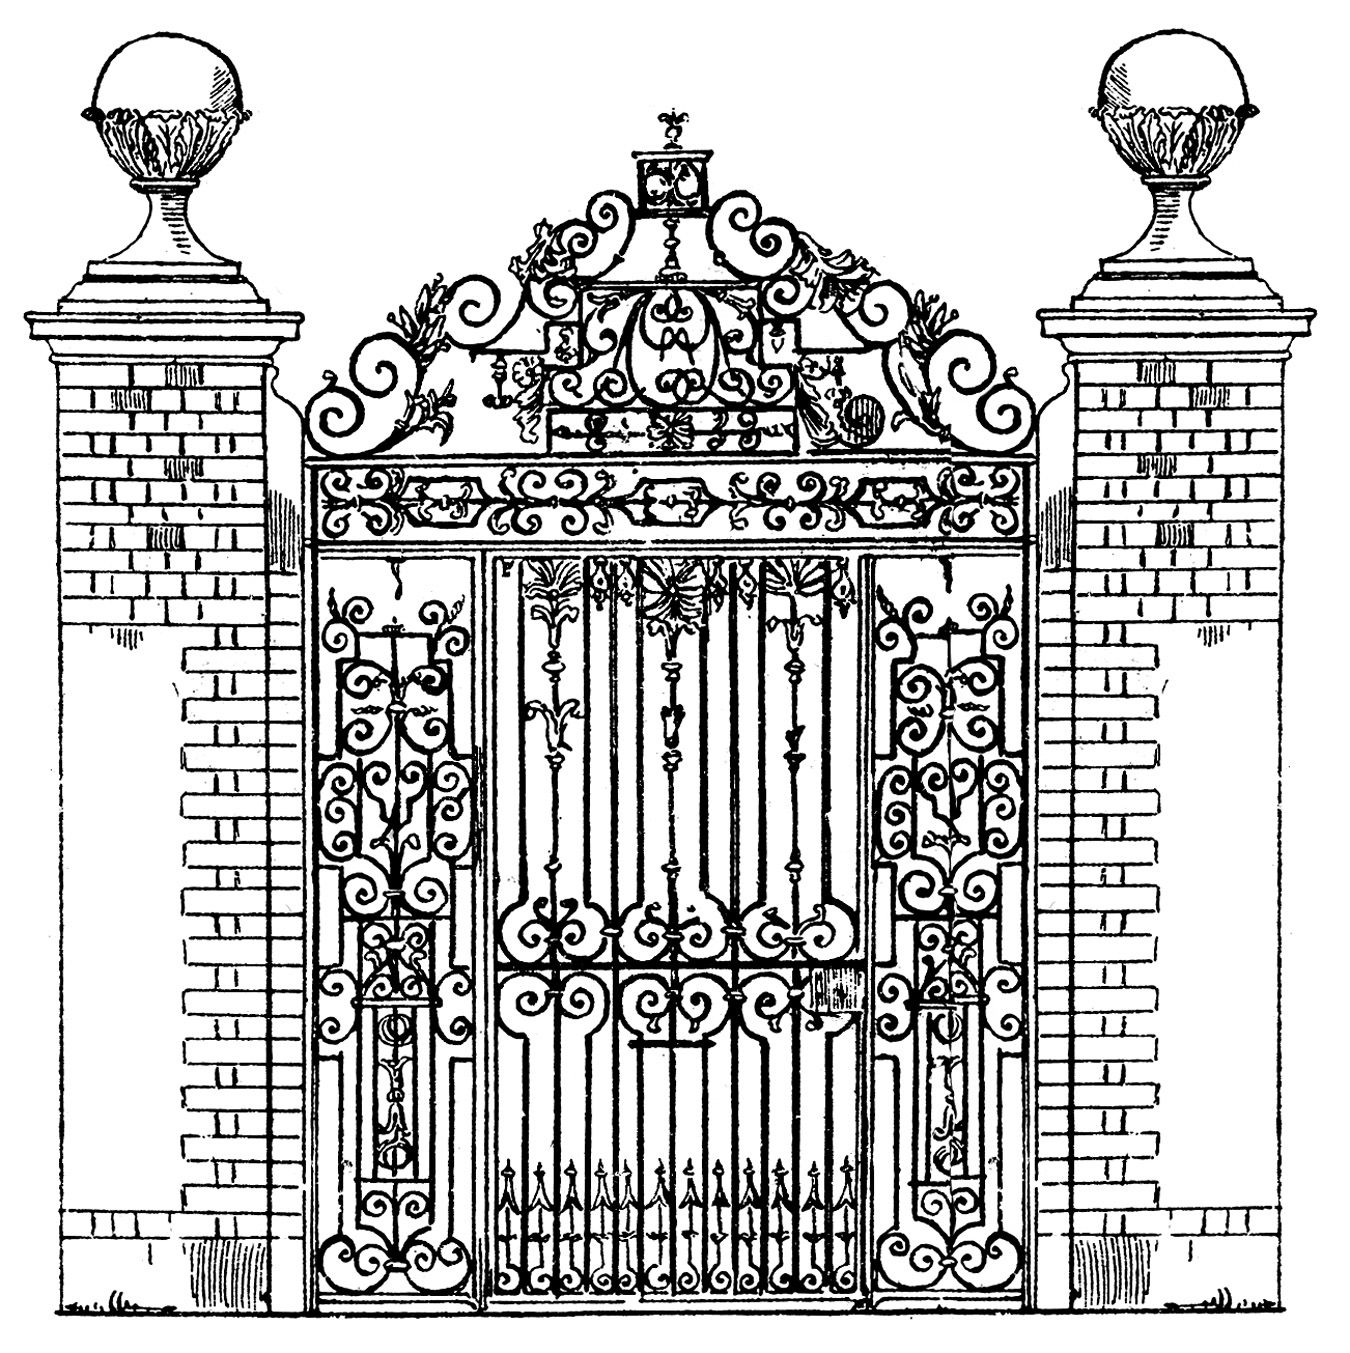 Vintage gray door clipart vector black and white stock Vintage Clip Art - Ornate Iron Gate - Scrolls | Inspiration ... vector black and white stock